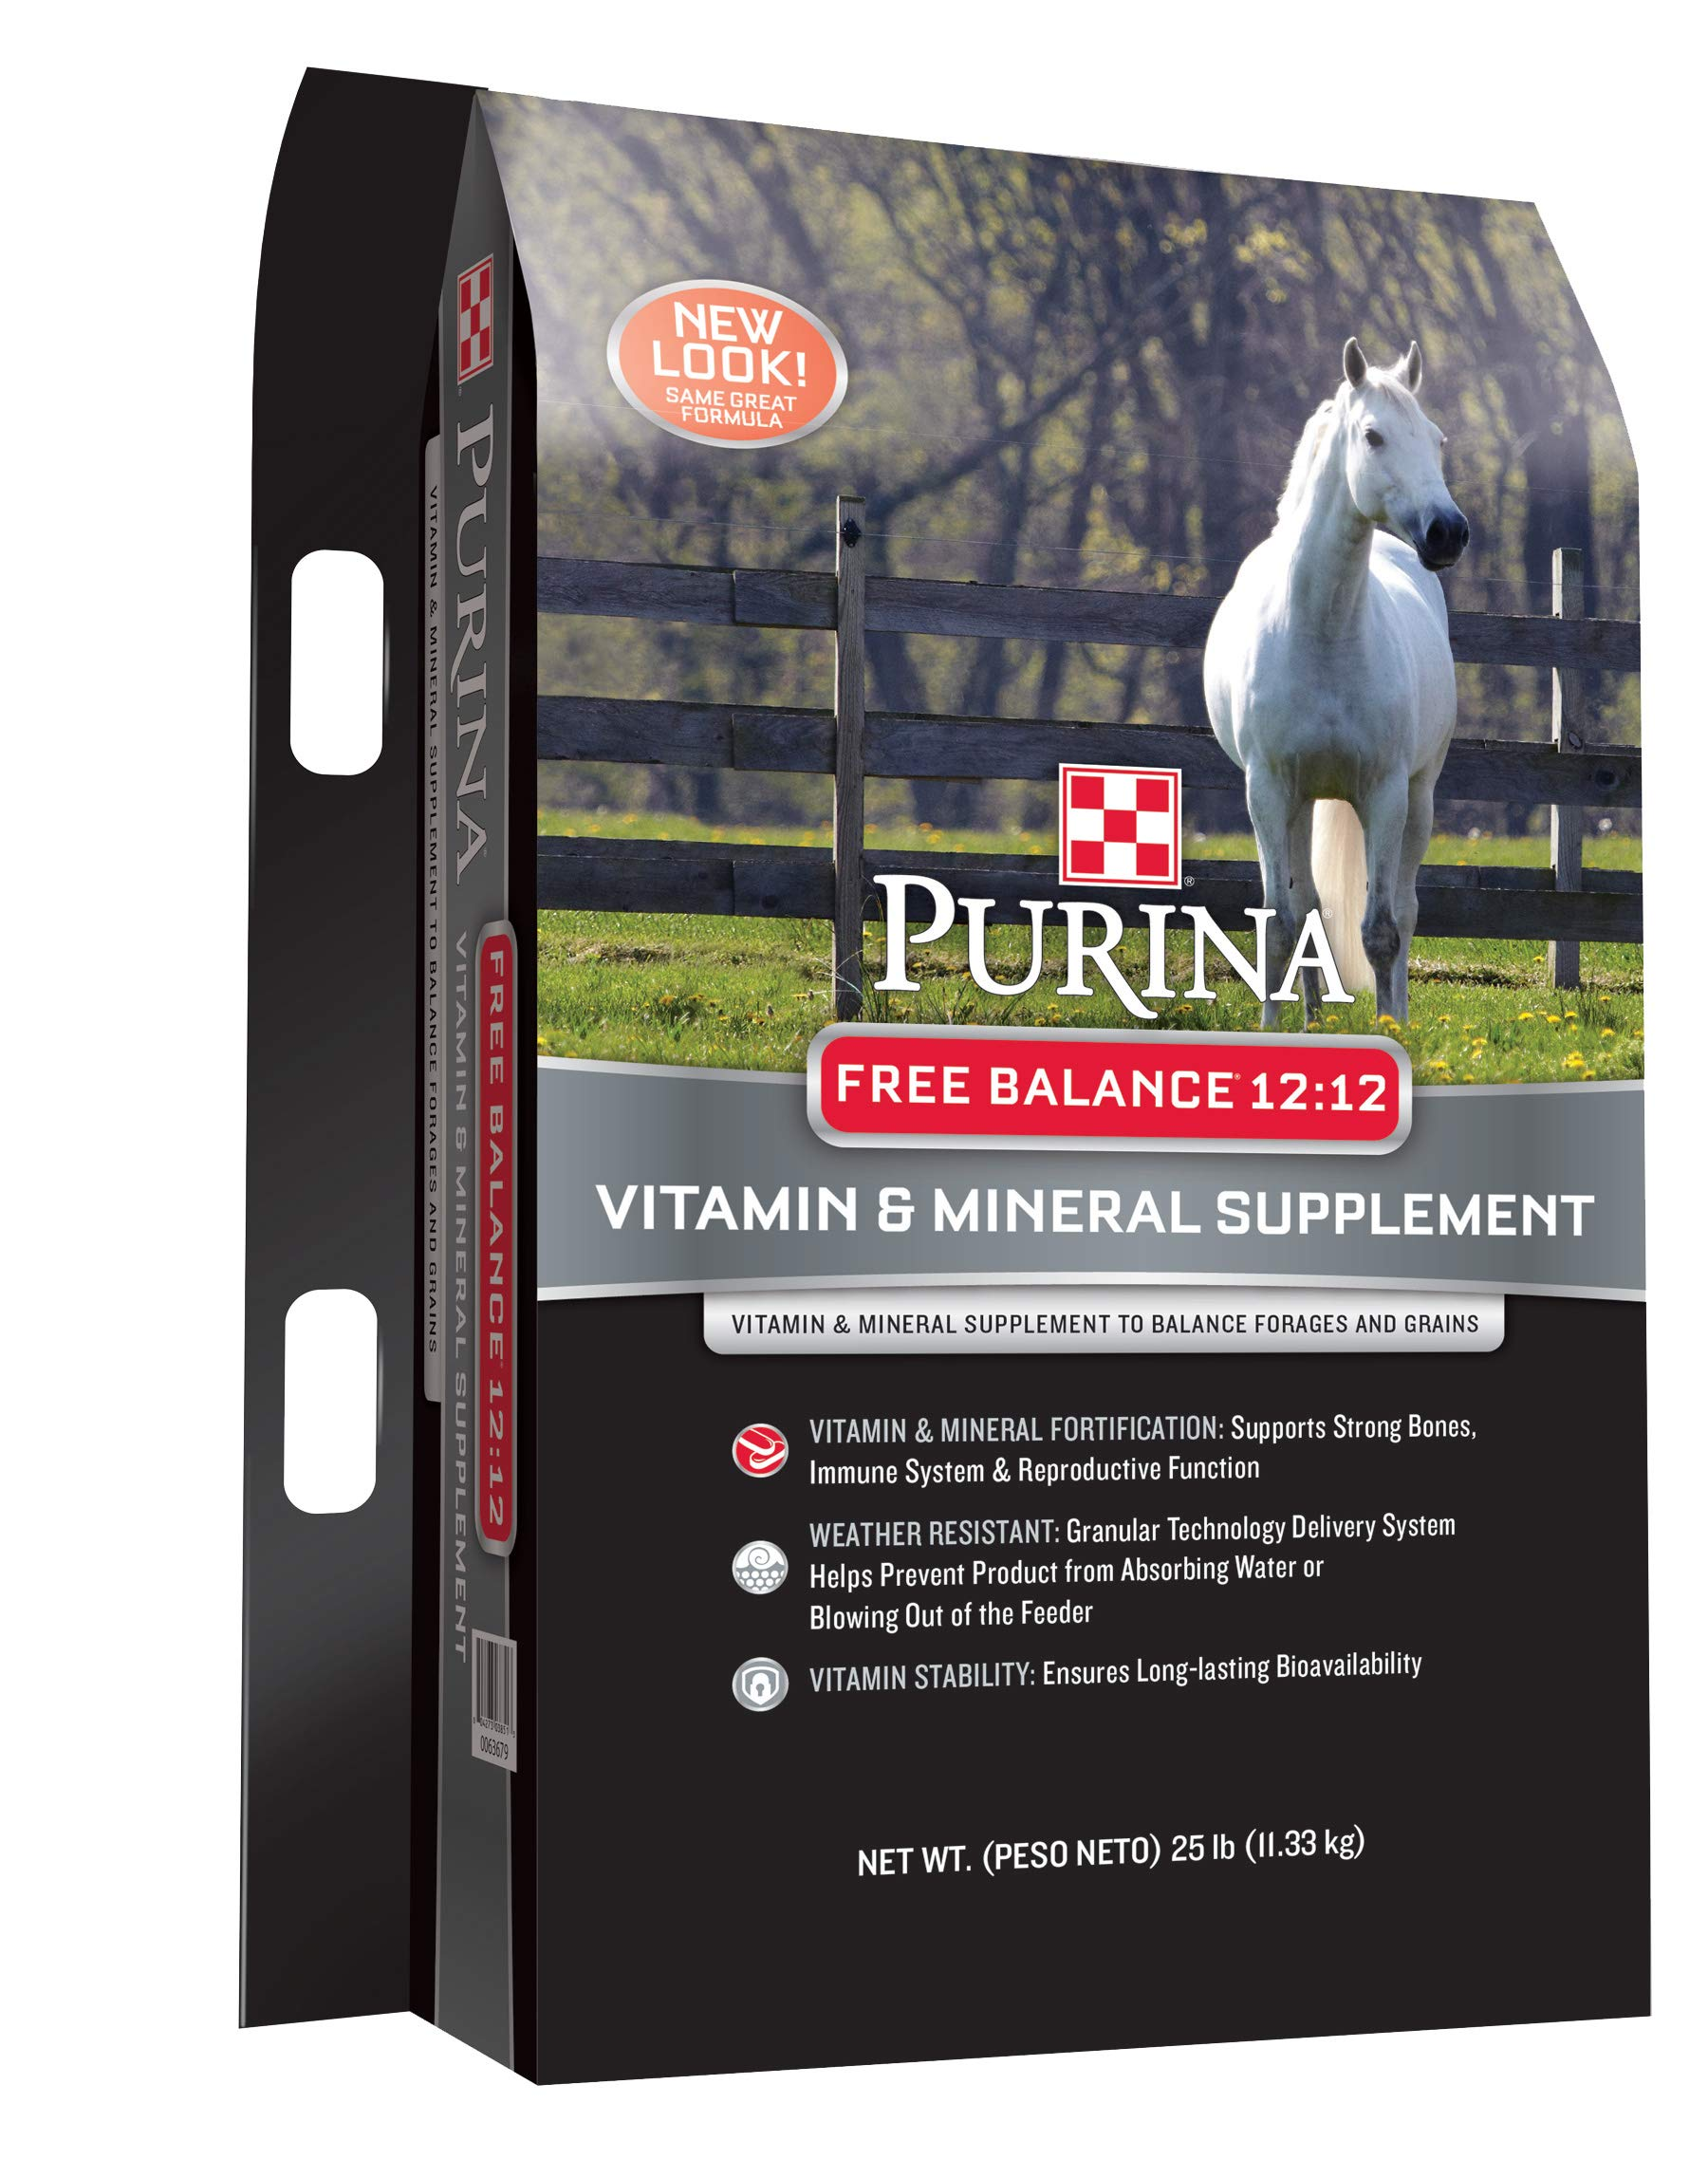 Purina Free Balance 12:12 Horse Supplement, 25 lb Bag by Purina